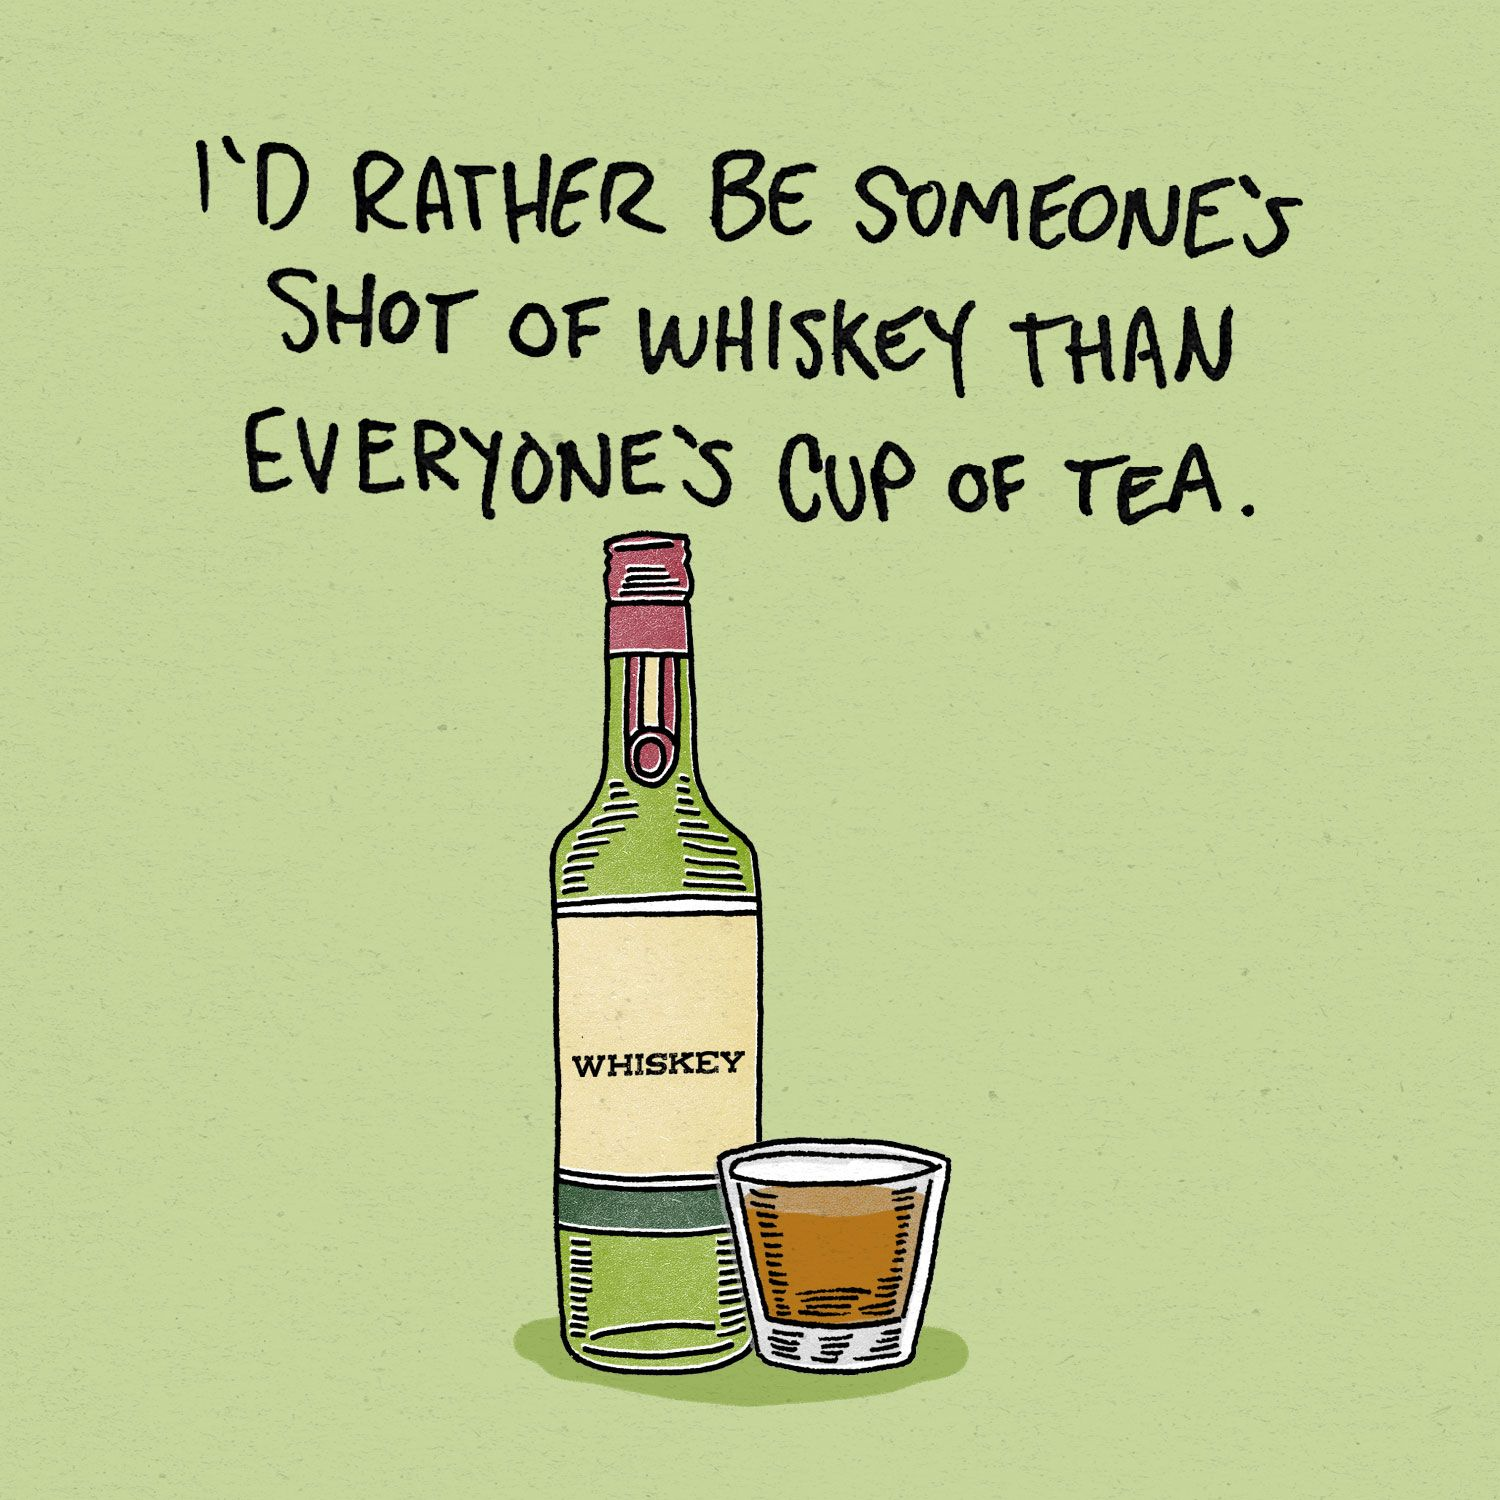 Best whiskey cocktails, whiskey brands and more   Booze Puns ... #irishCoffee